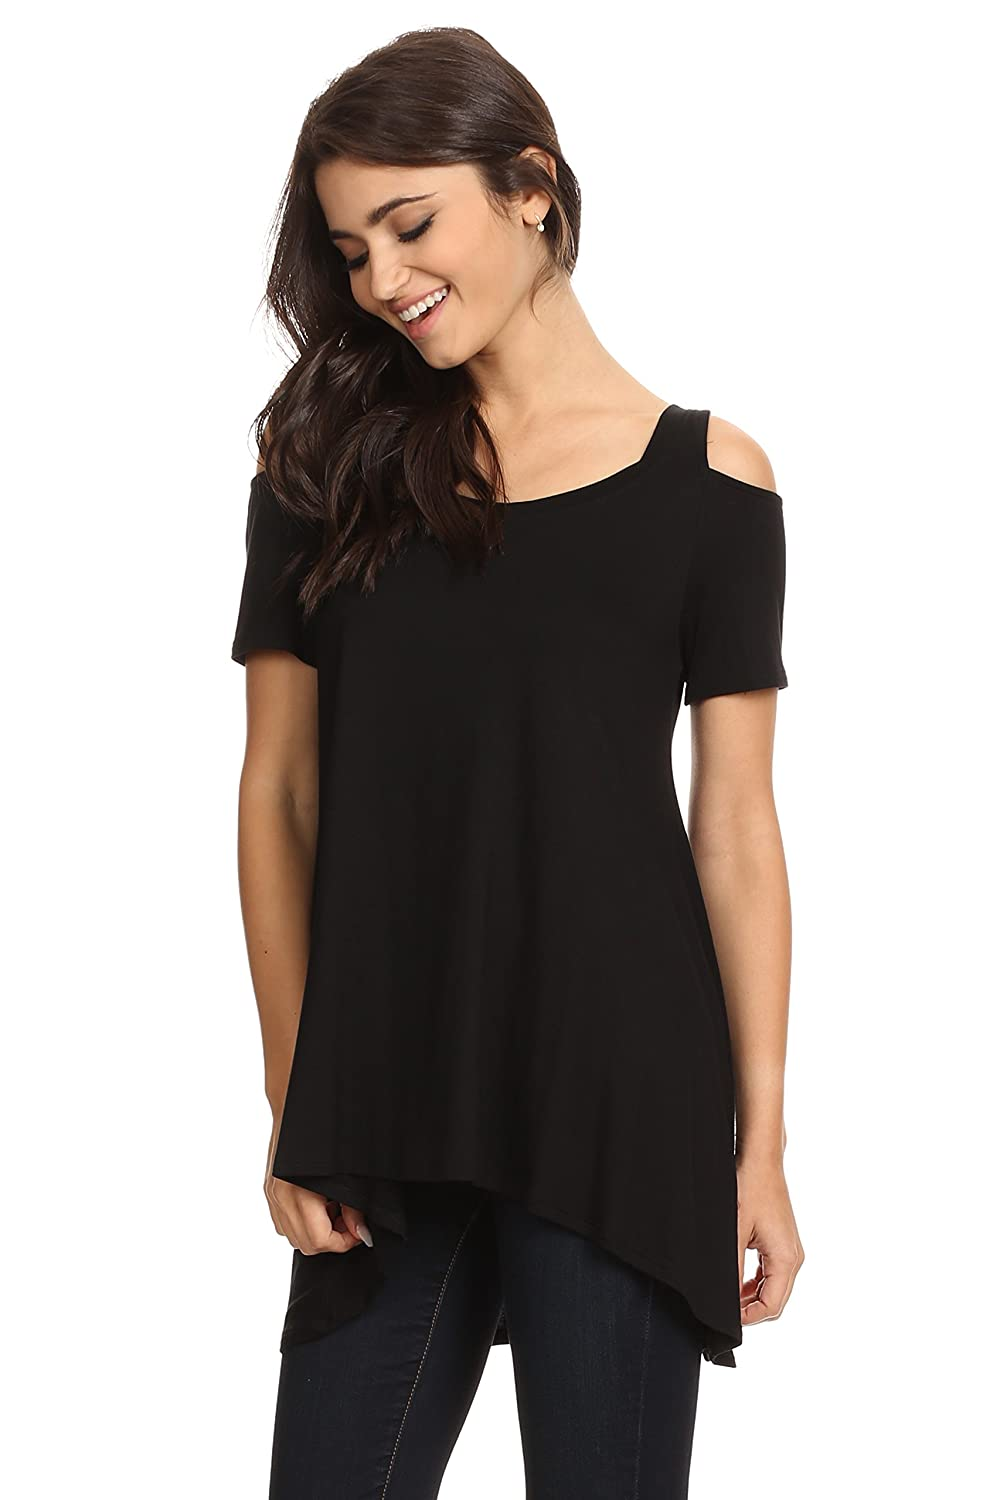 a841028d29d DETAILS: Loose fit jersey knit top with hi-low hem and short length sleeves  cold shoulder detail. This cute top is best worn with your favorite pair of  ...